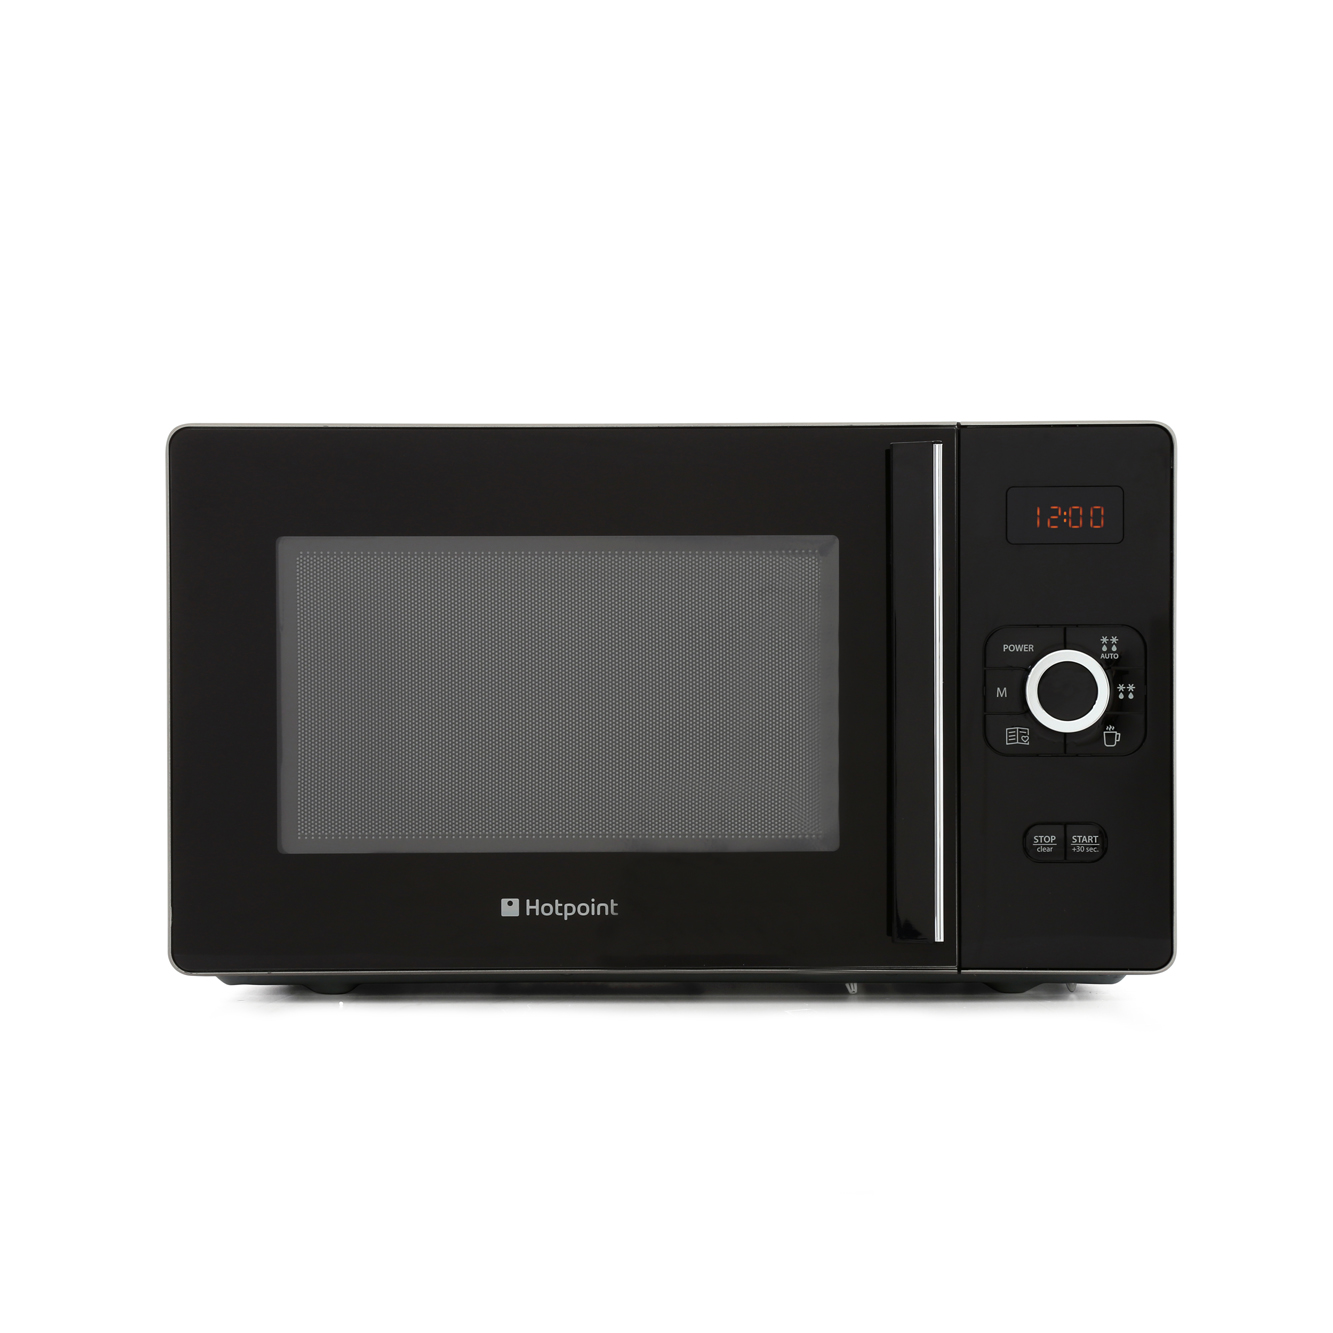 Hotpoint MWH2521B Microwave